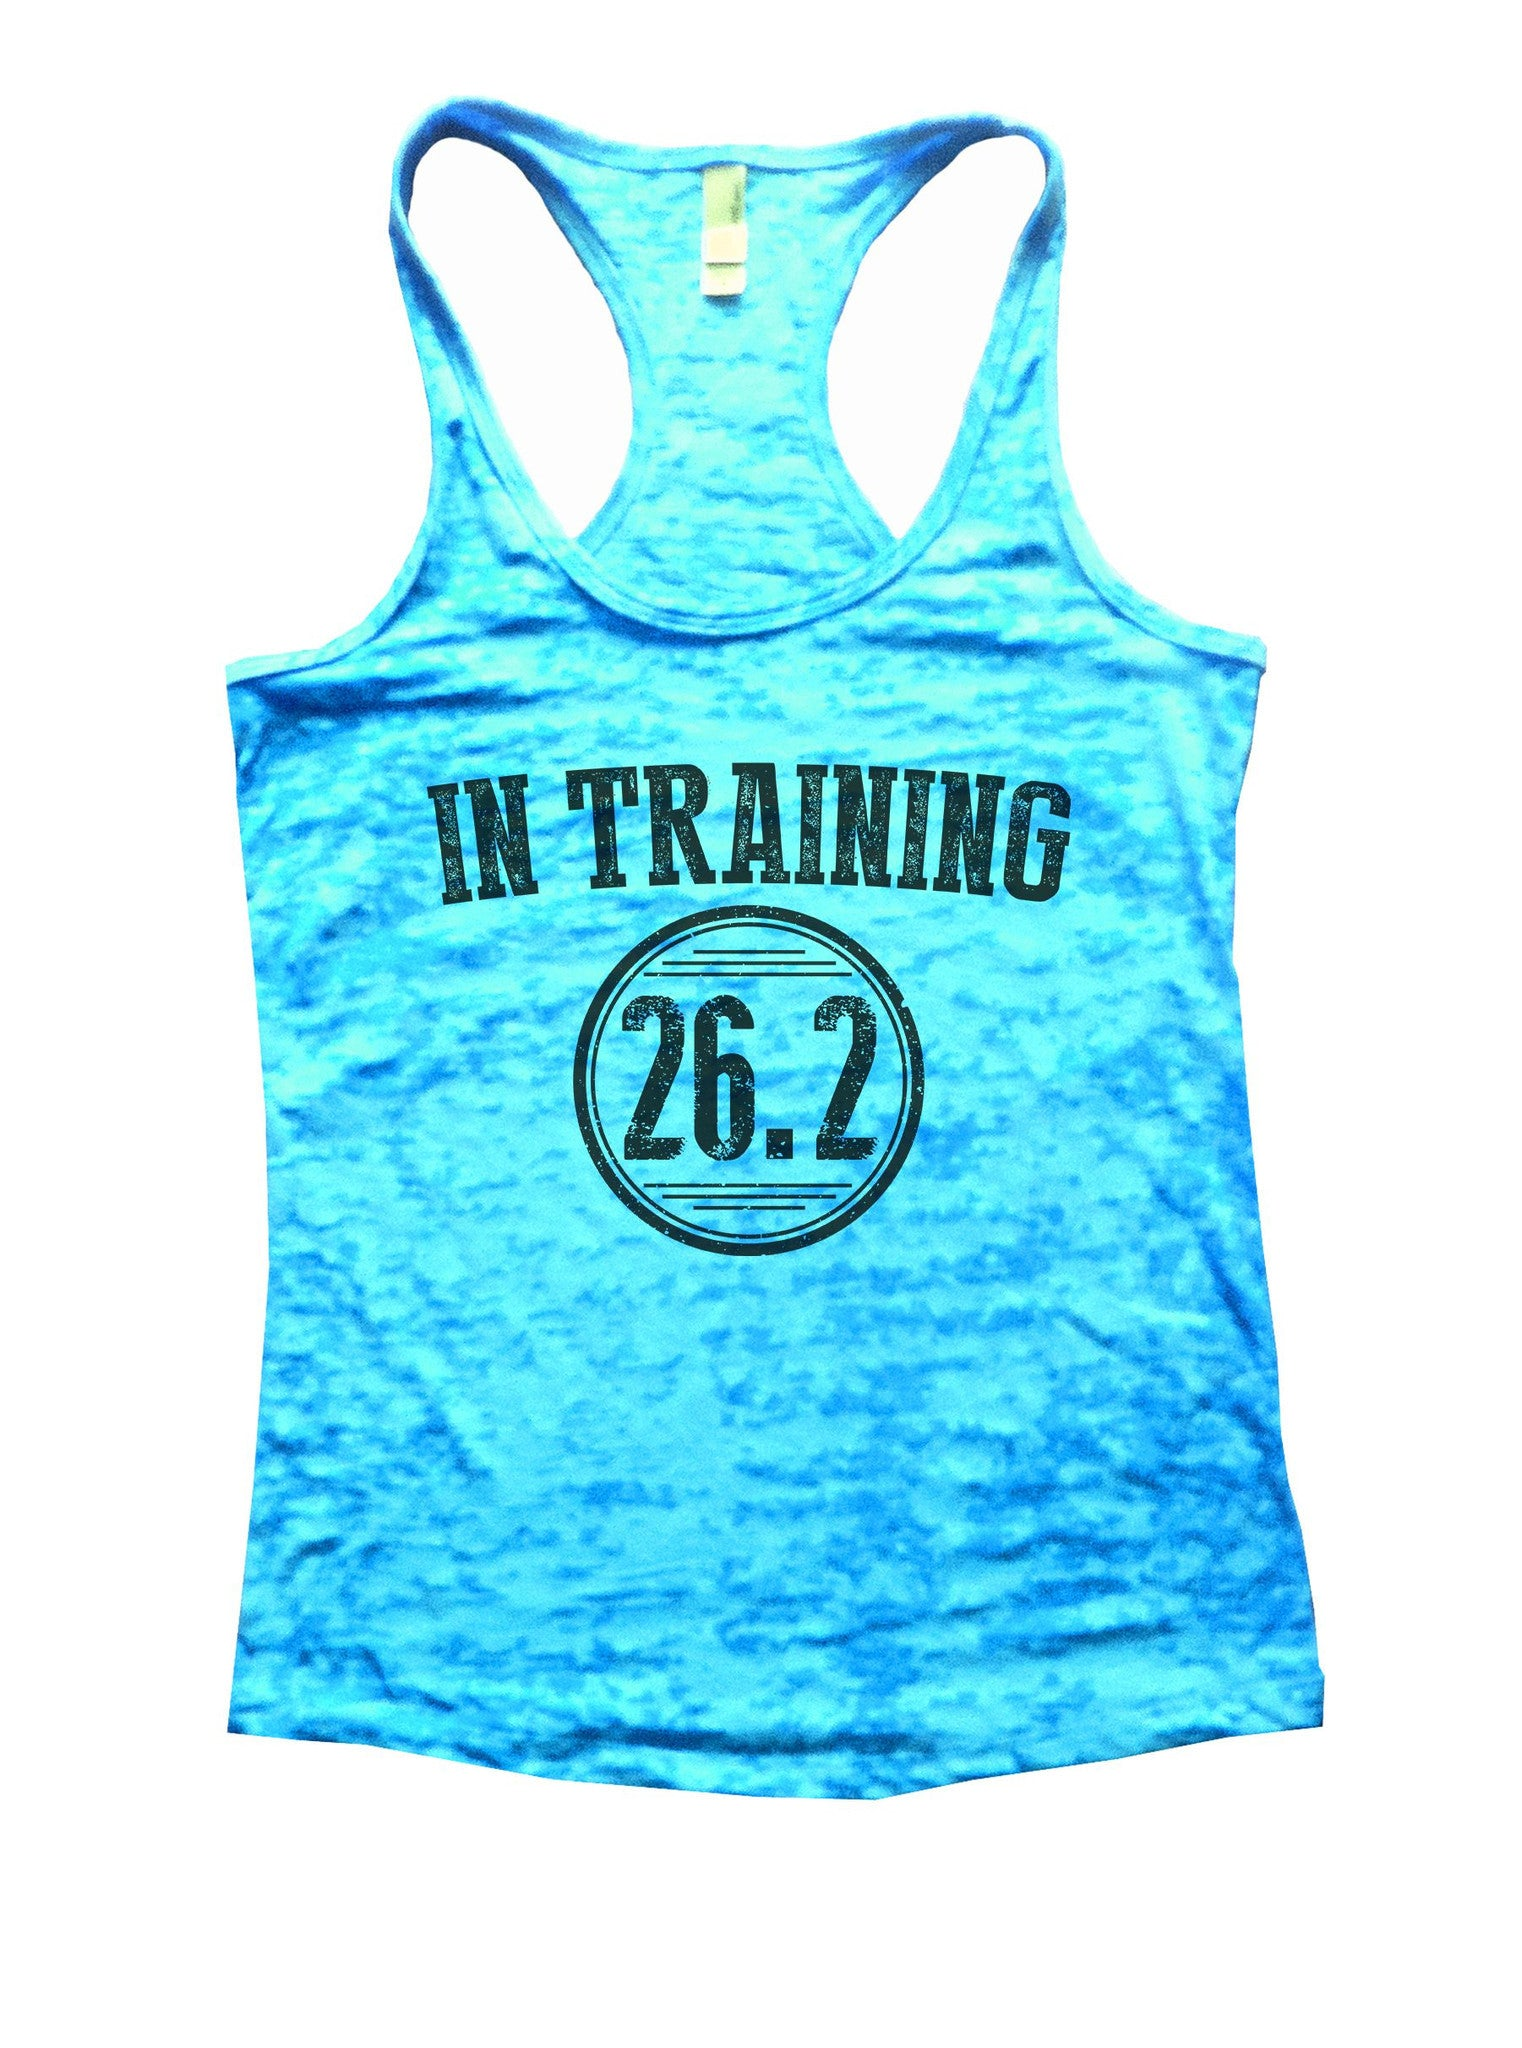 In Training 26.2 Burnout Tank Top By BurnoutTankTops.com - 1037 - Funny Shirts Tank Tops Burnouts and Triblends  - 4